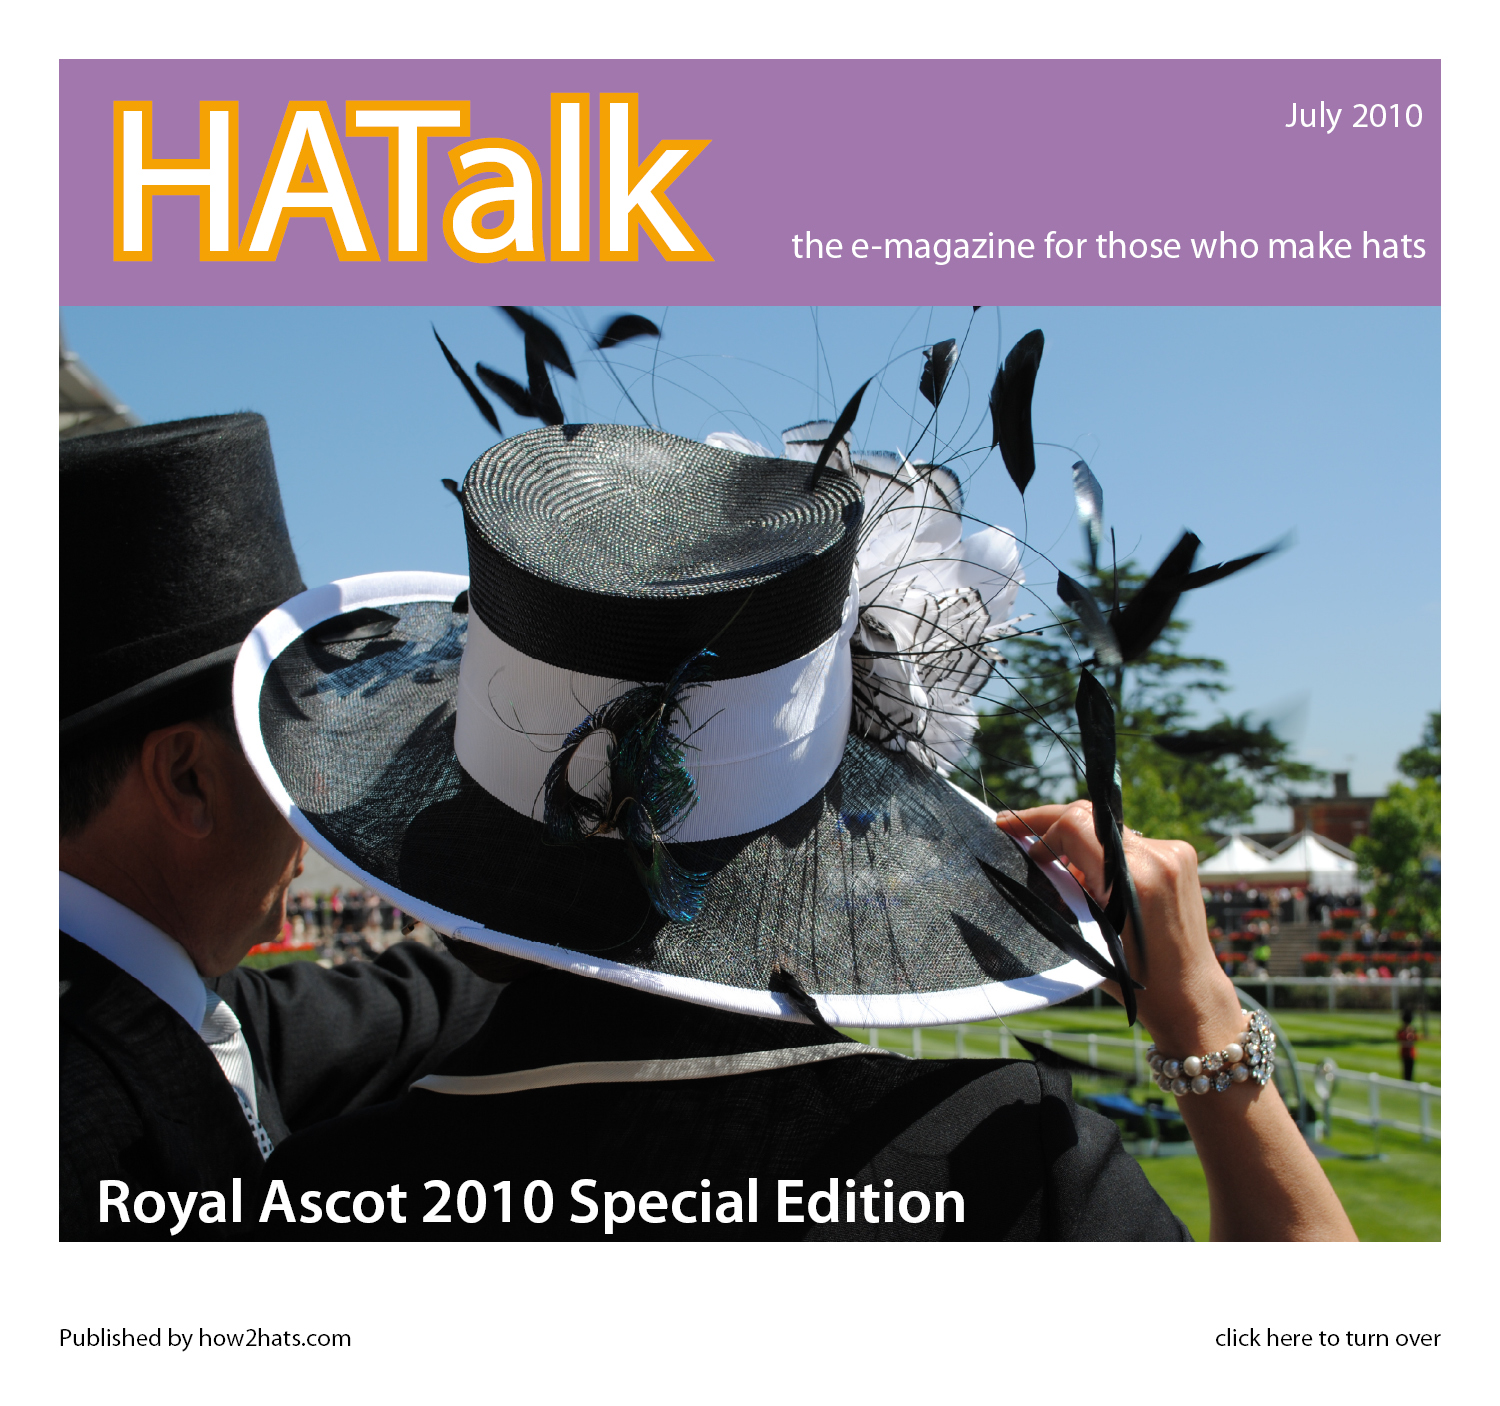 Royal Ascot 2010 Millinery Styles from HATalk e-magazine.